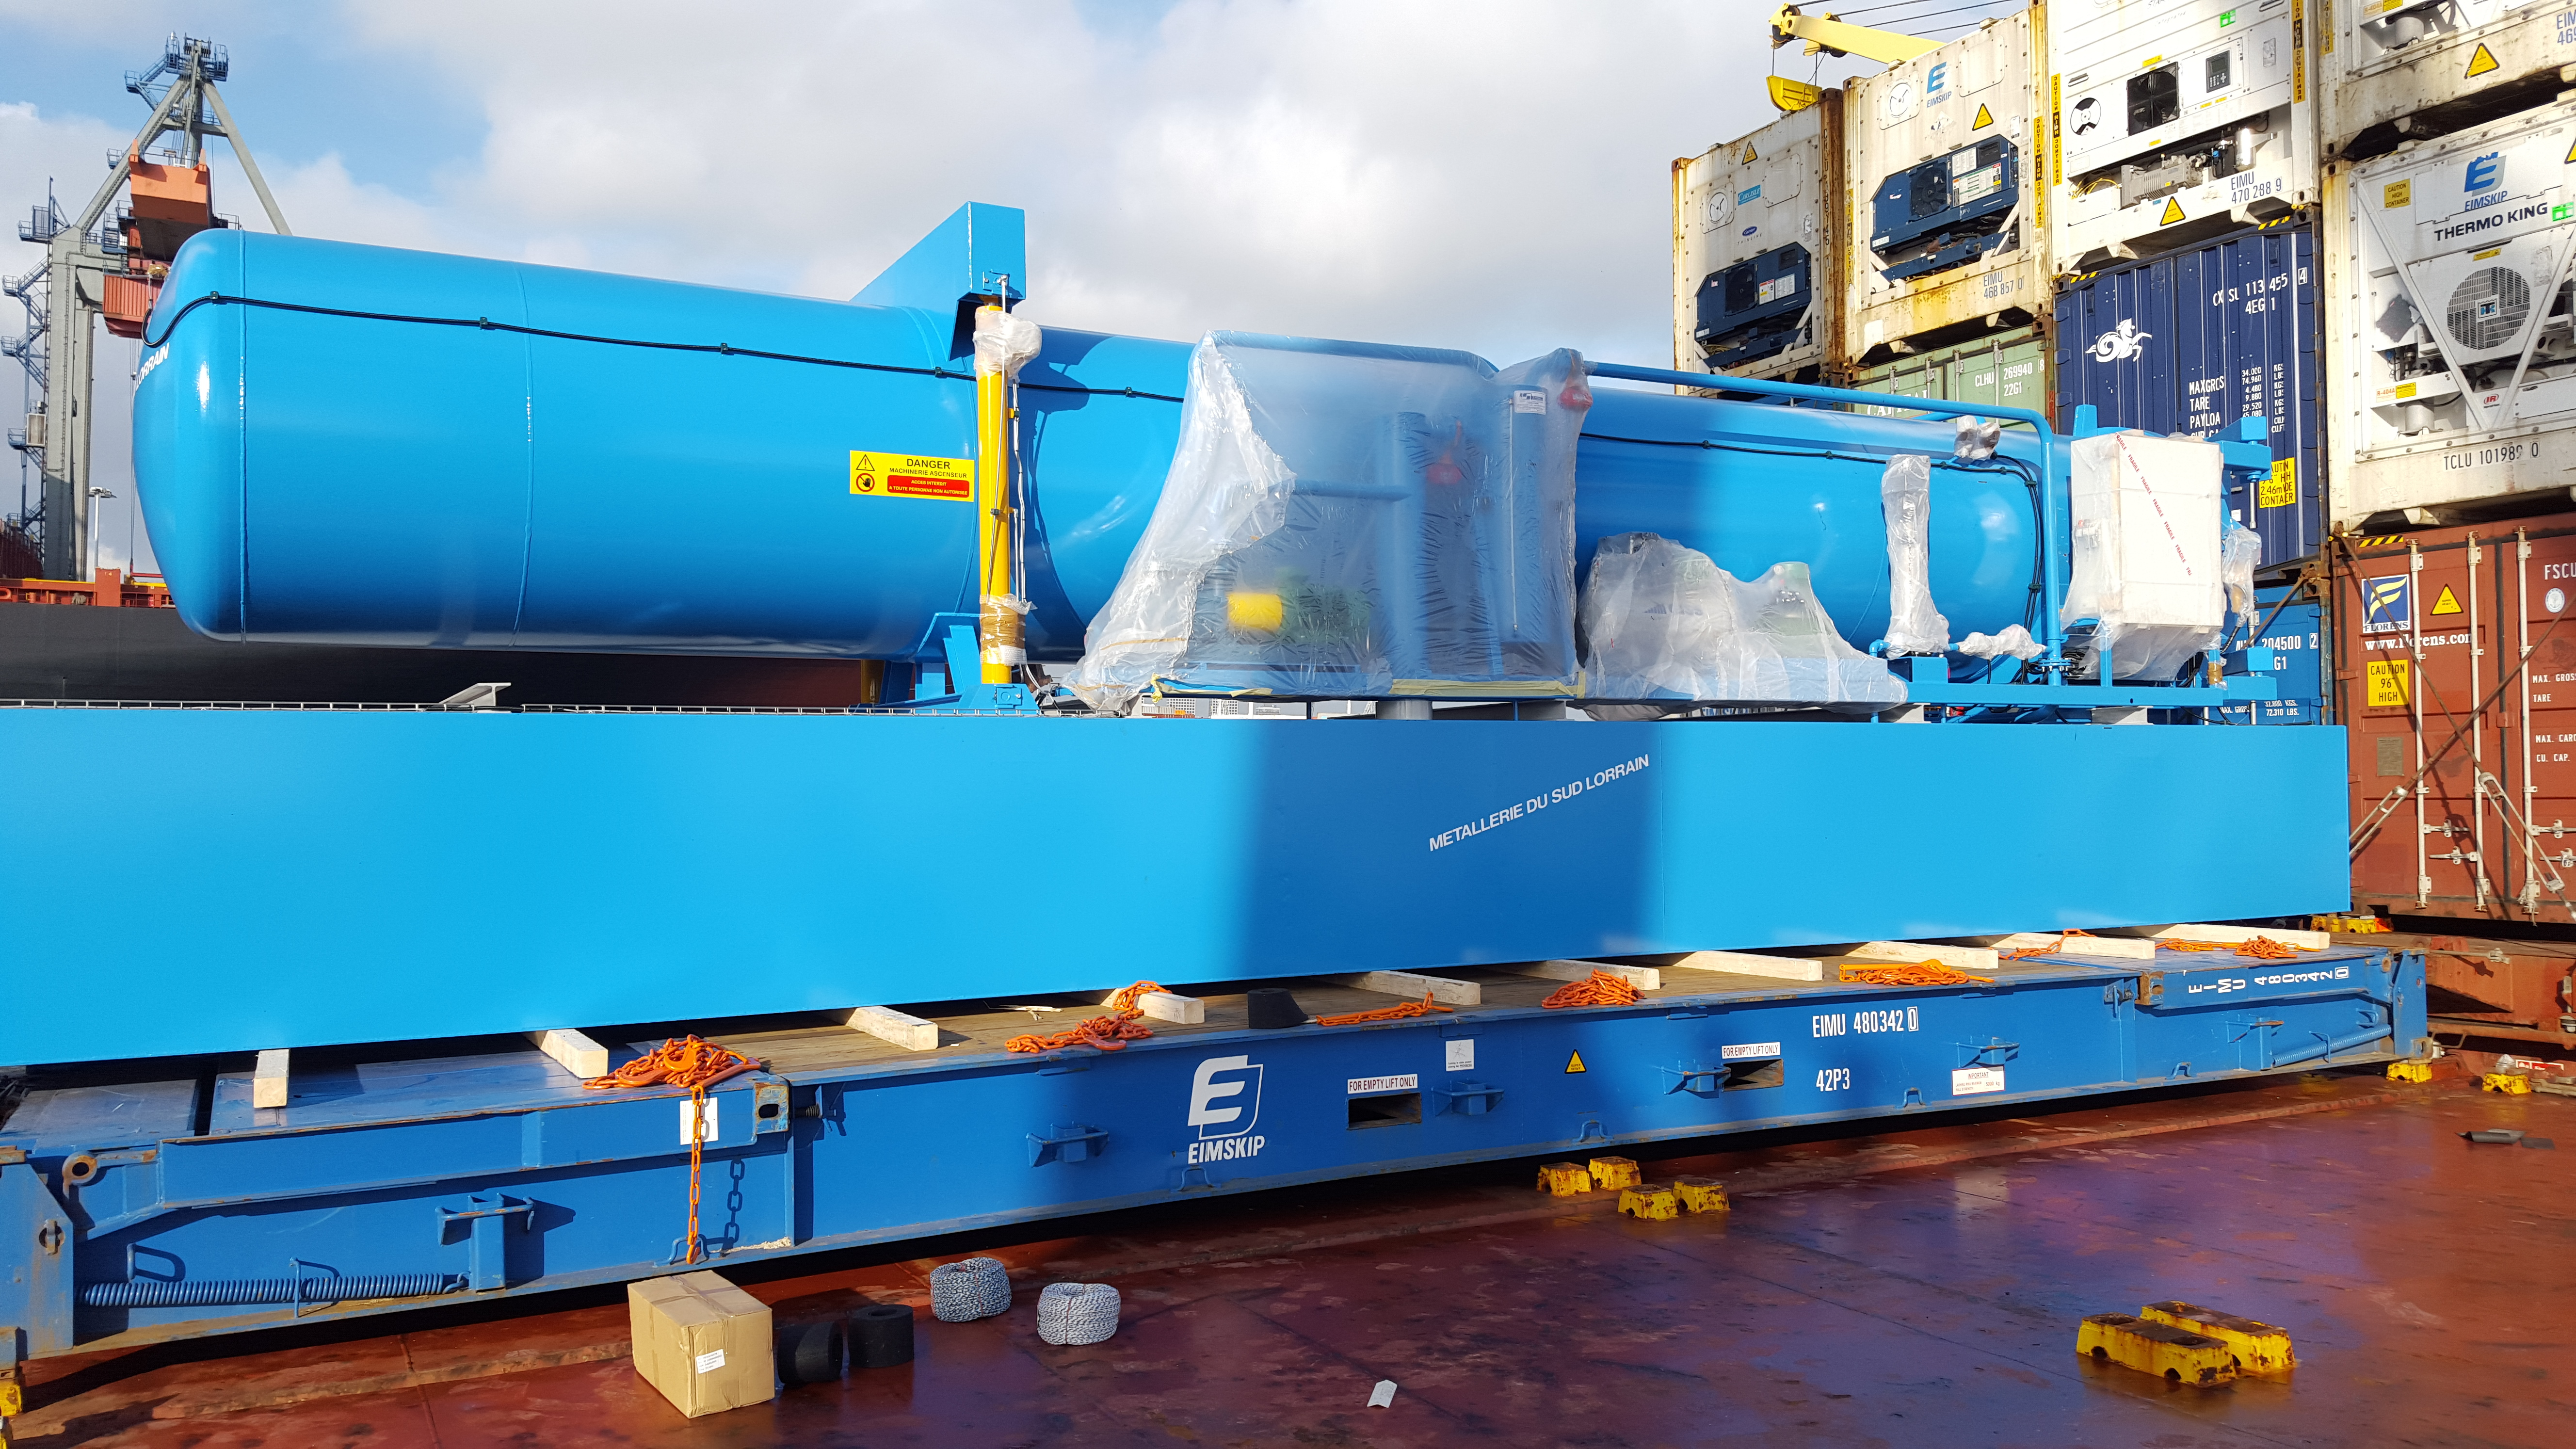 Turnkey plant as it arrives to you